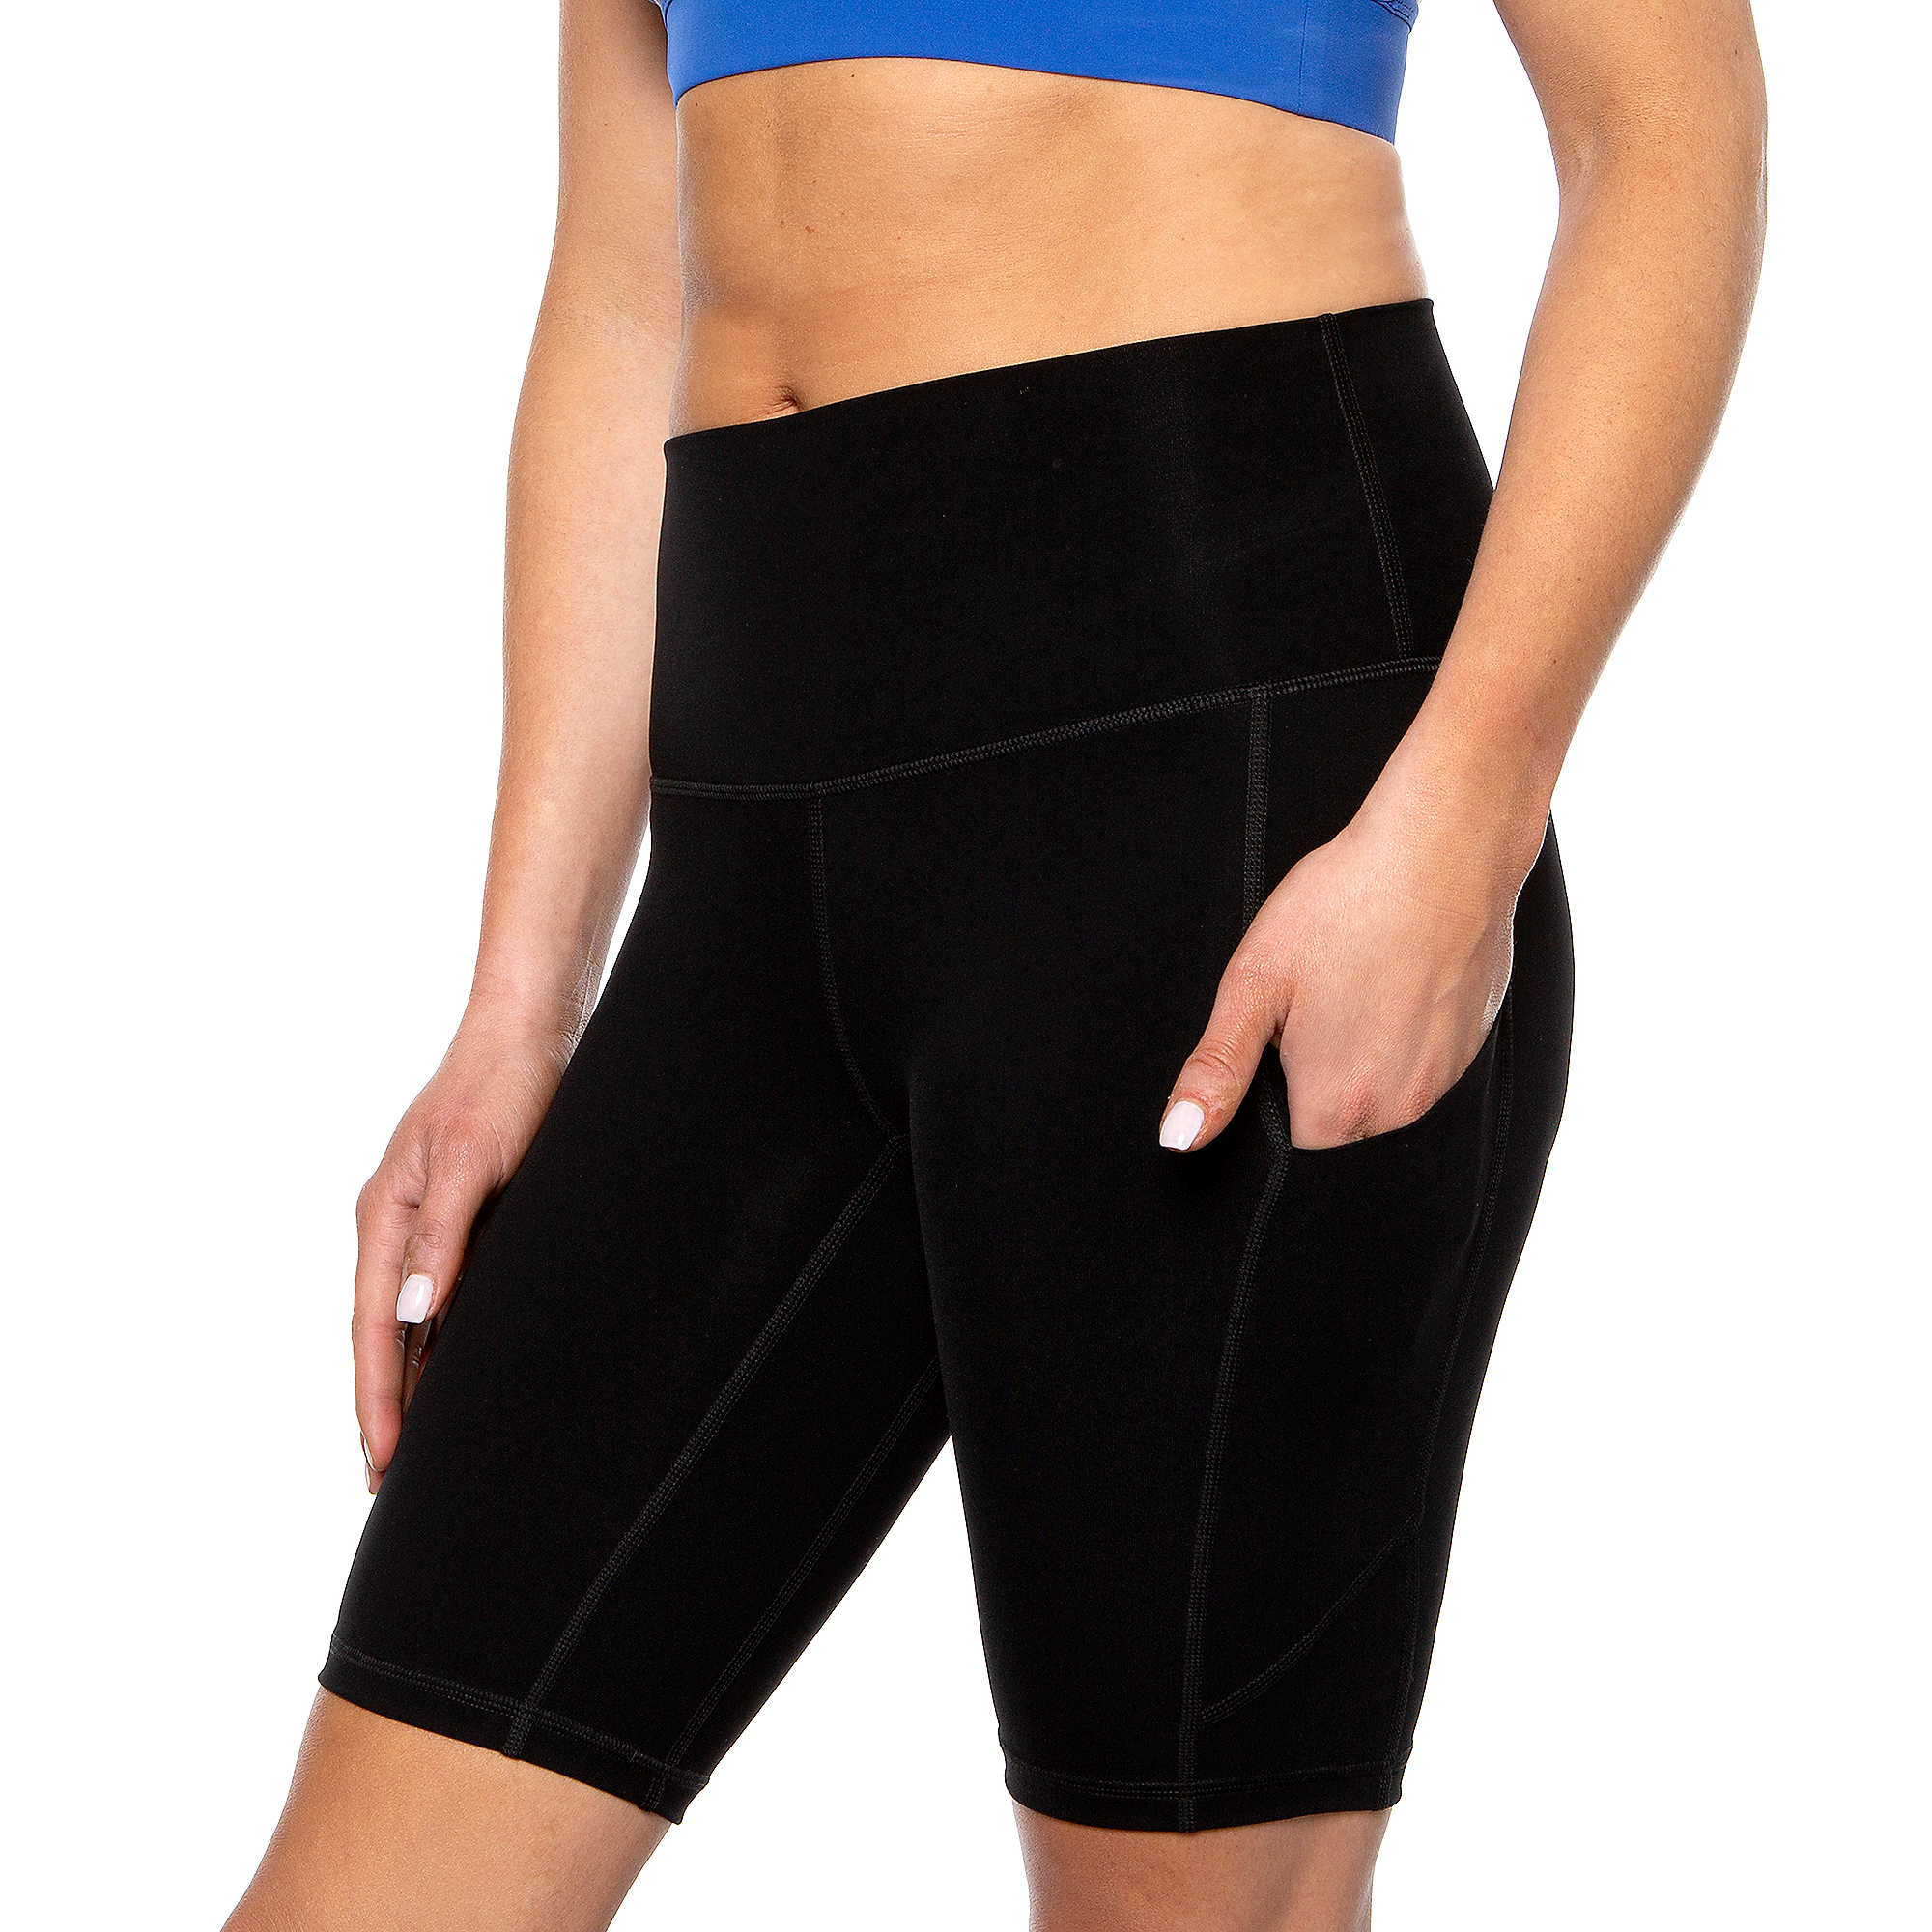 Studio KadyLuxe Womens Biker Short with Pocket